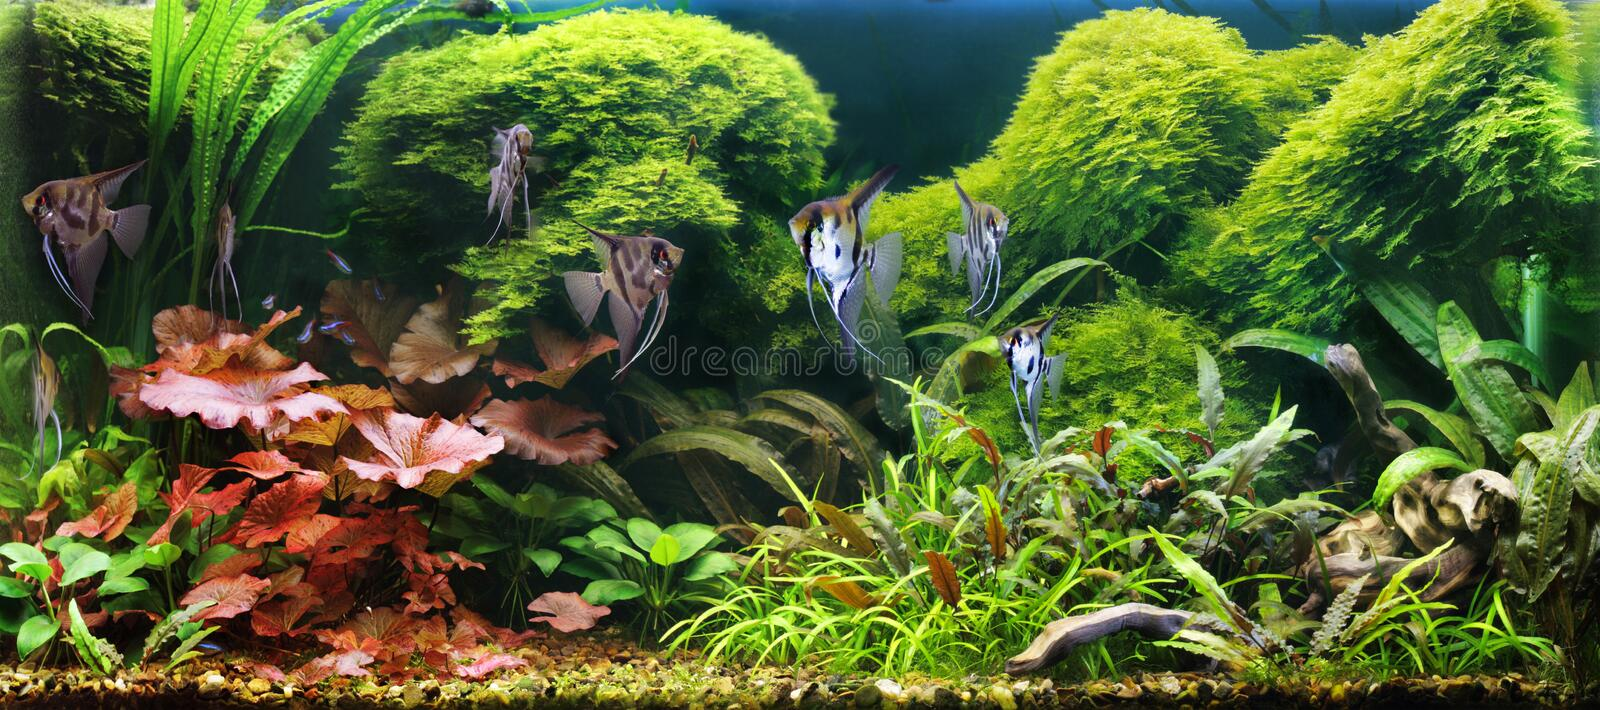 Decorative Aquarium Royalty Free Stock Photo